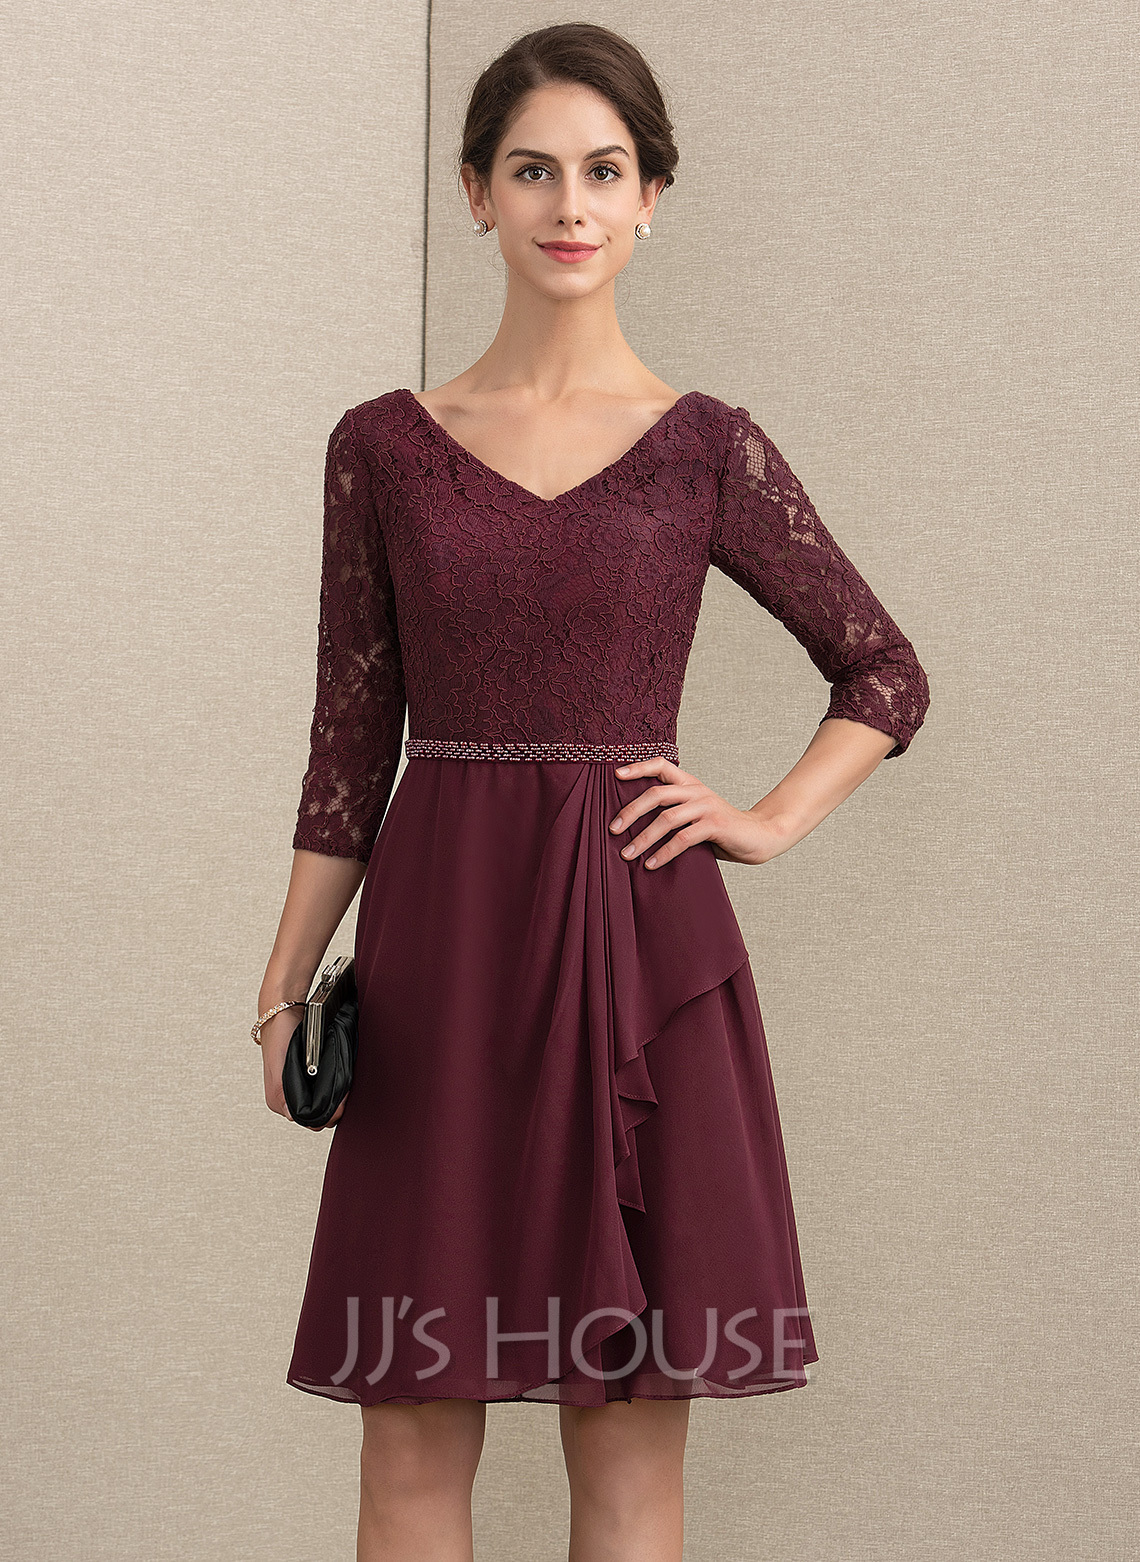 cc6fd9482543 A-Line V-neck Knee-Length Chiffon Lace Mother of the Bride Dress. Loading  zoom